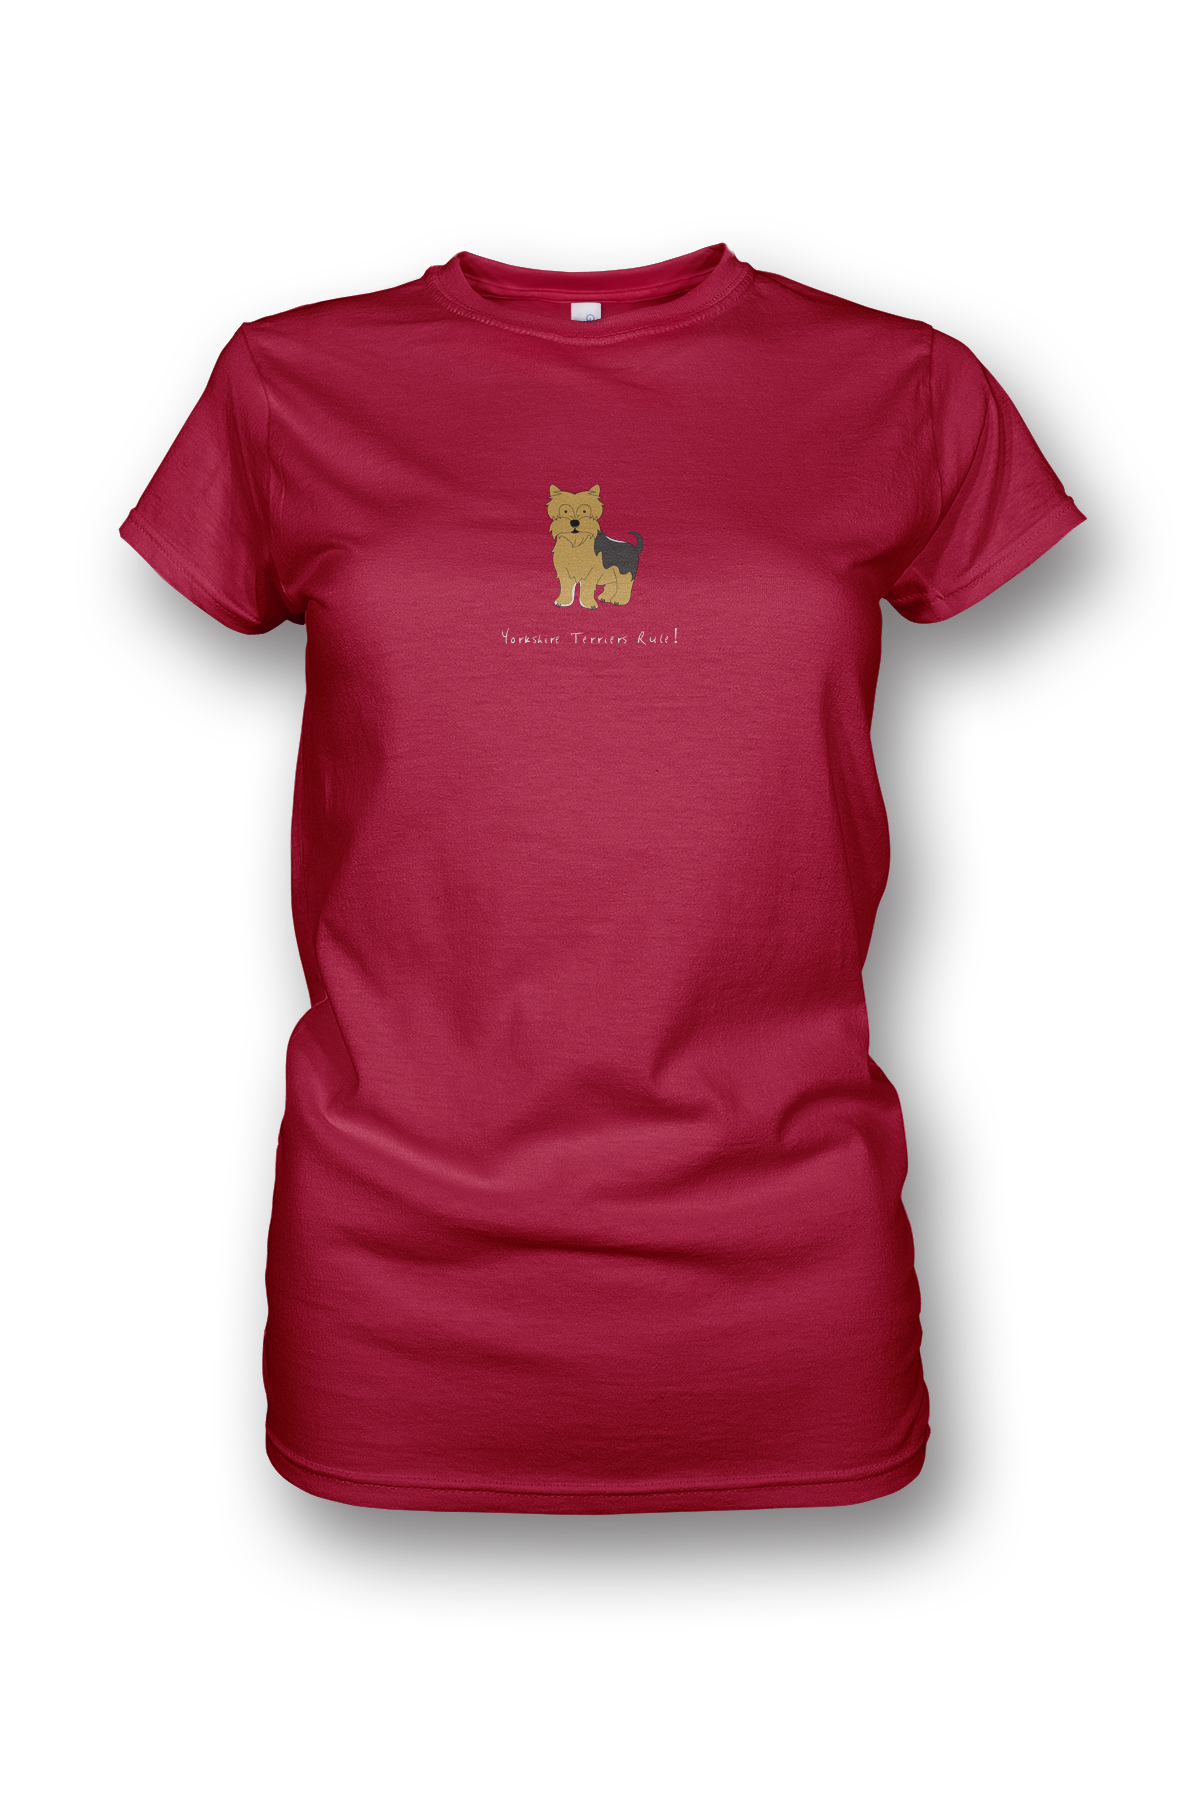 Ladies Crew Neck T-Shirt - Yorkshire Terriers Rule! - Dogs Rule!